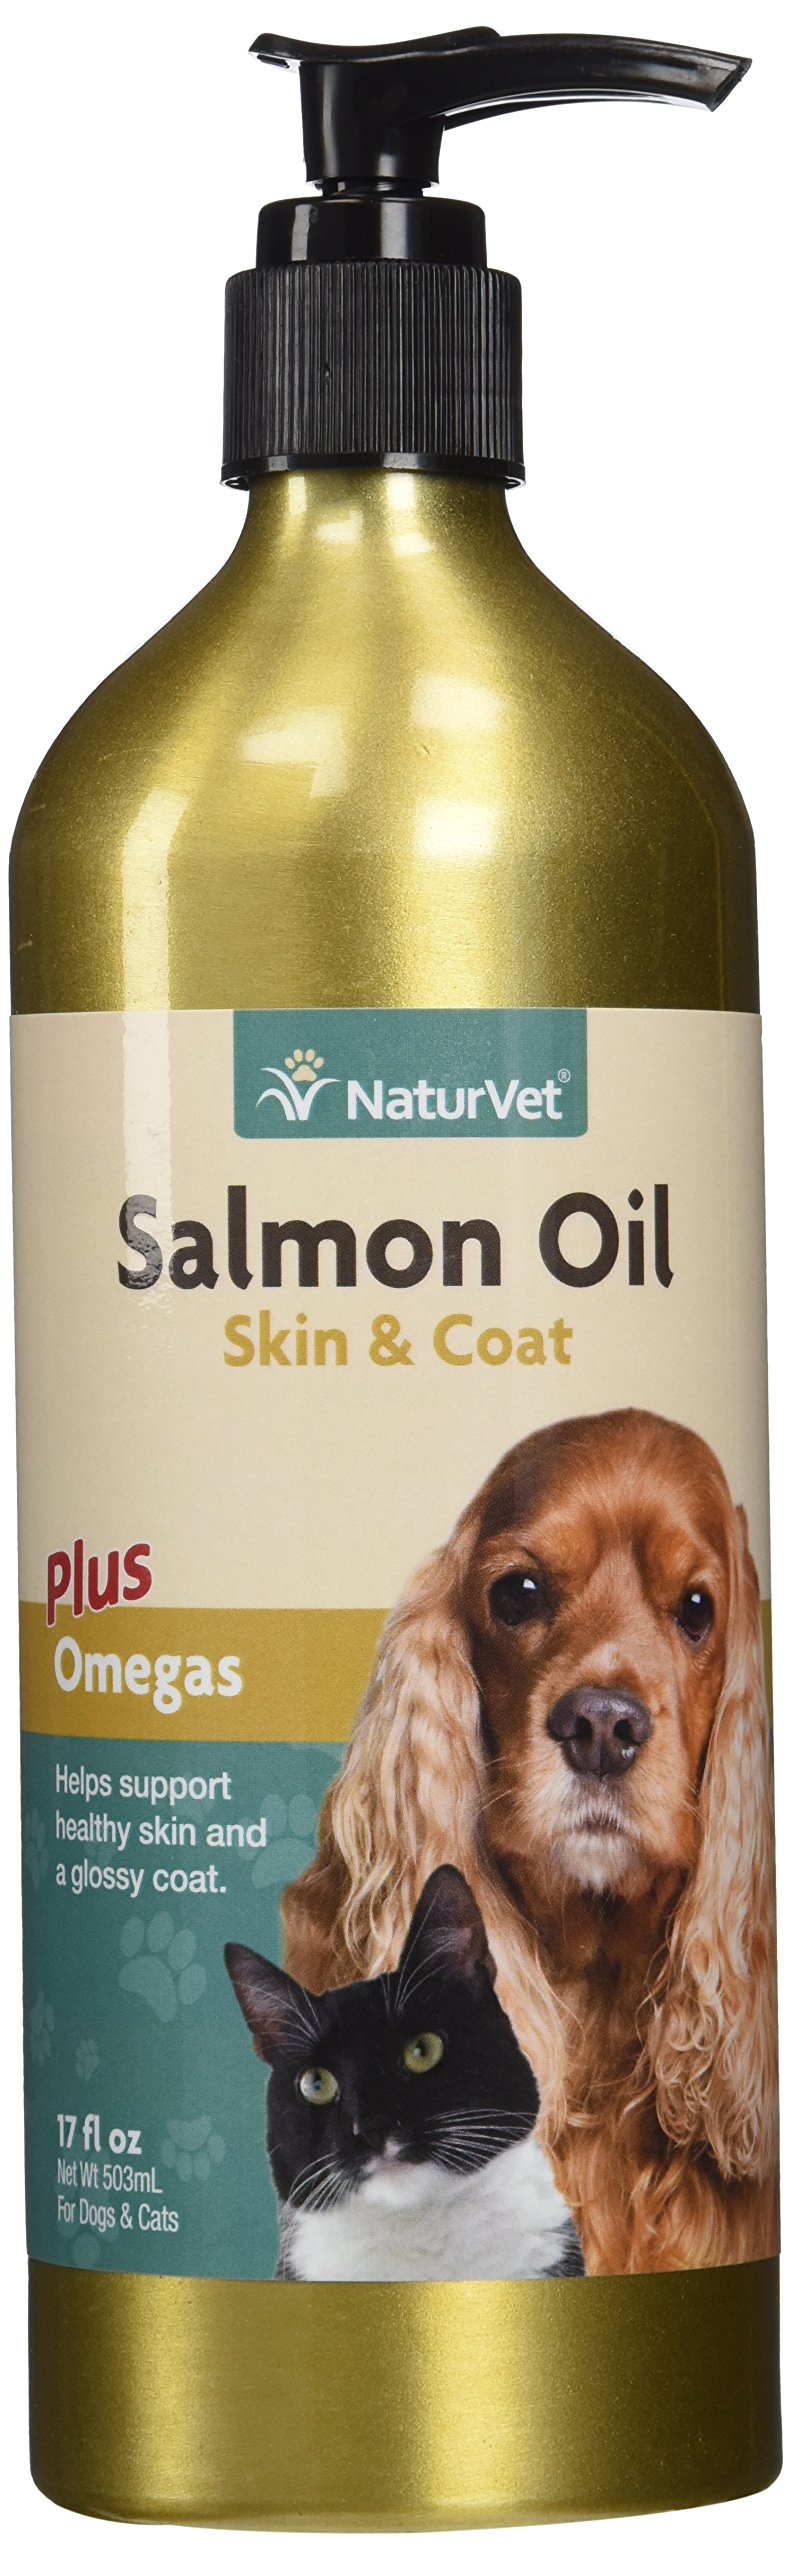 NaturVet 978181 Salmon Oil Unscented for Dog and Cat, 17 oz